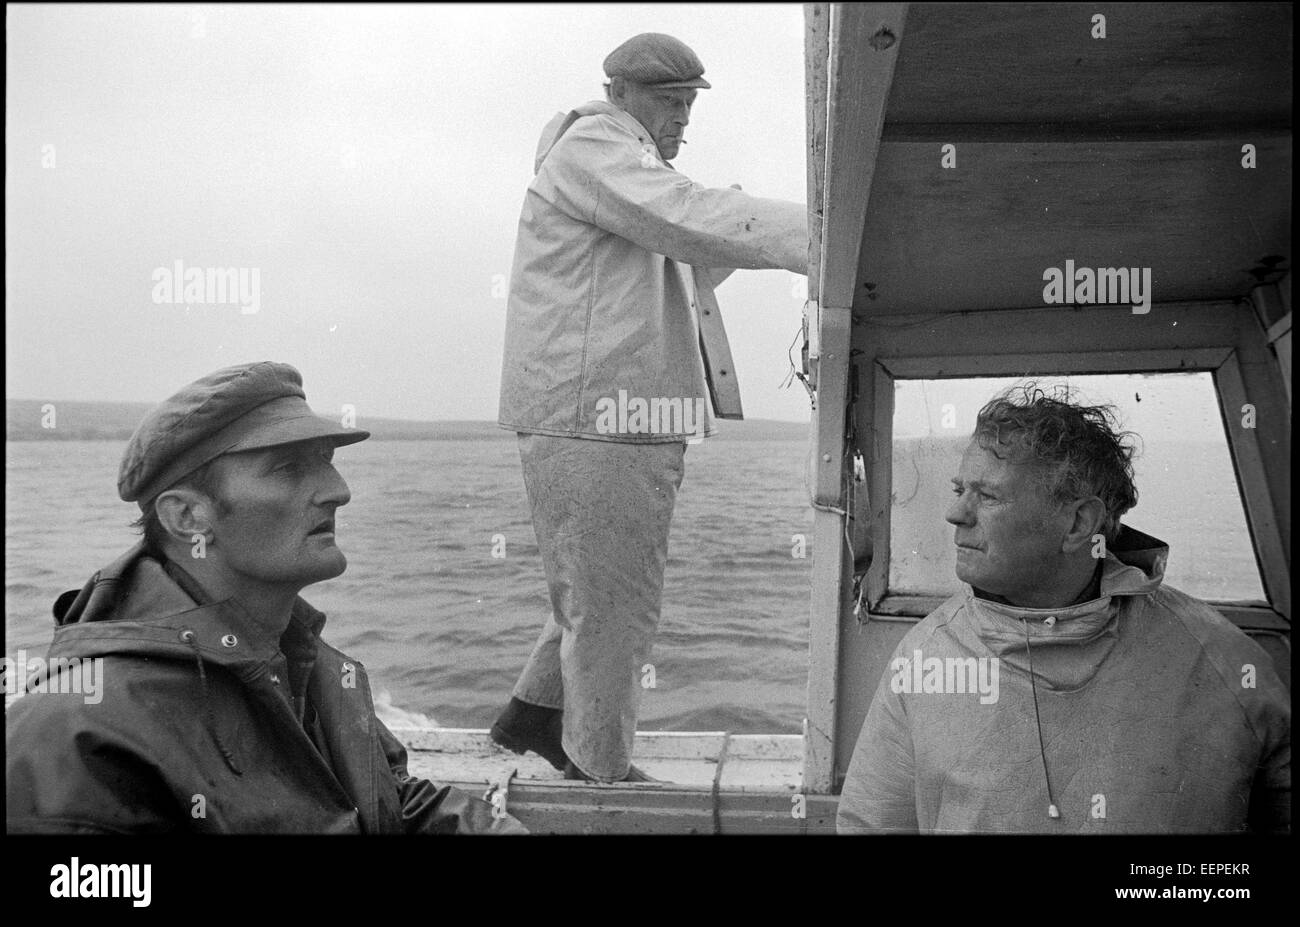 Boatmen bring the sheep in from outlying isles, Shetland. - Stock Image